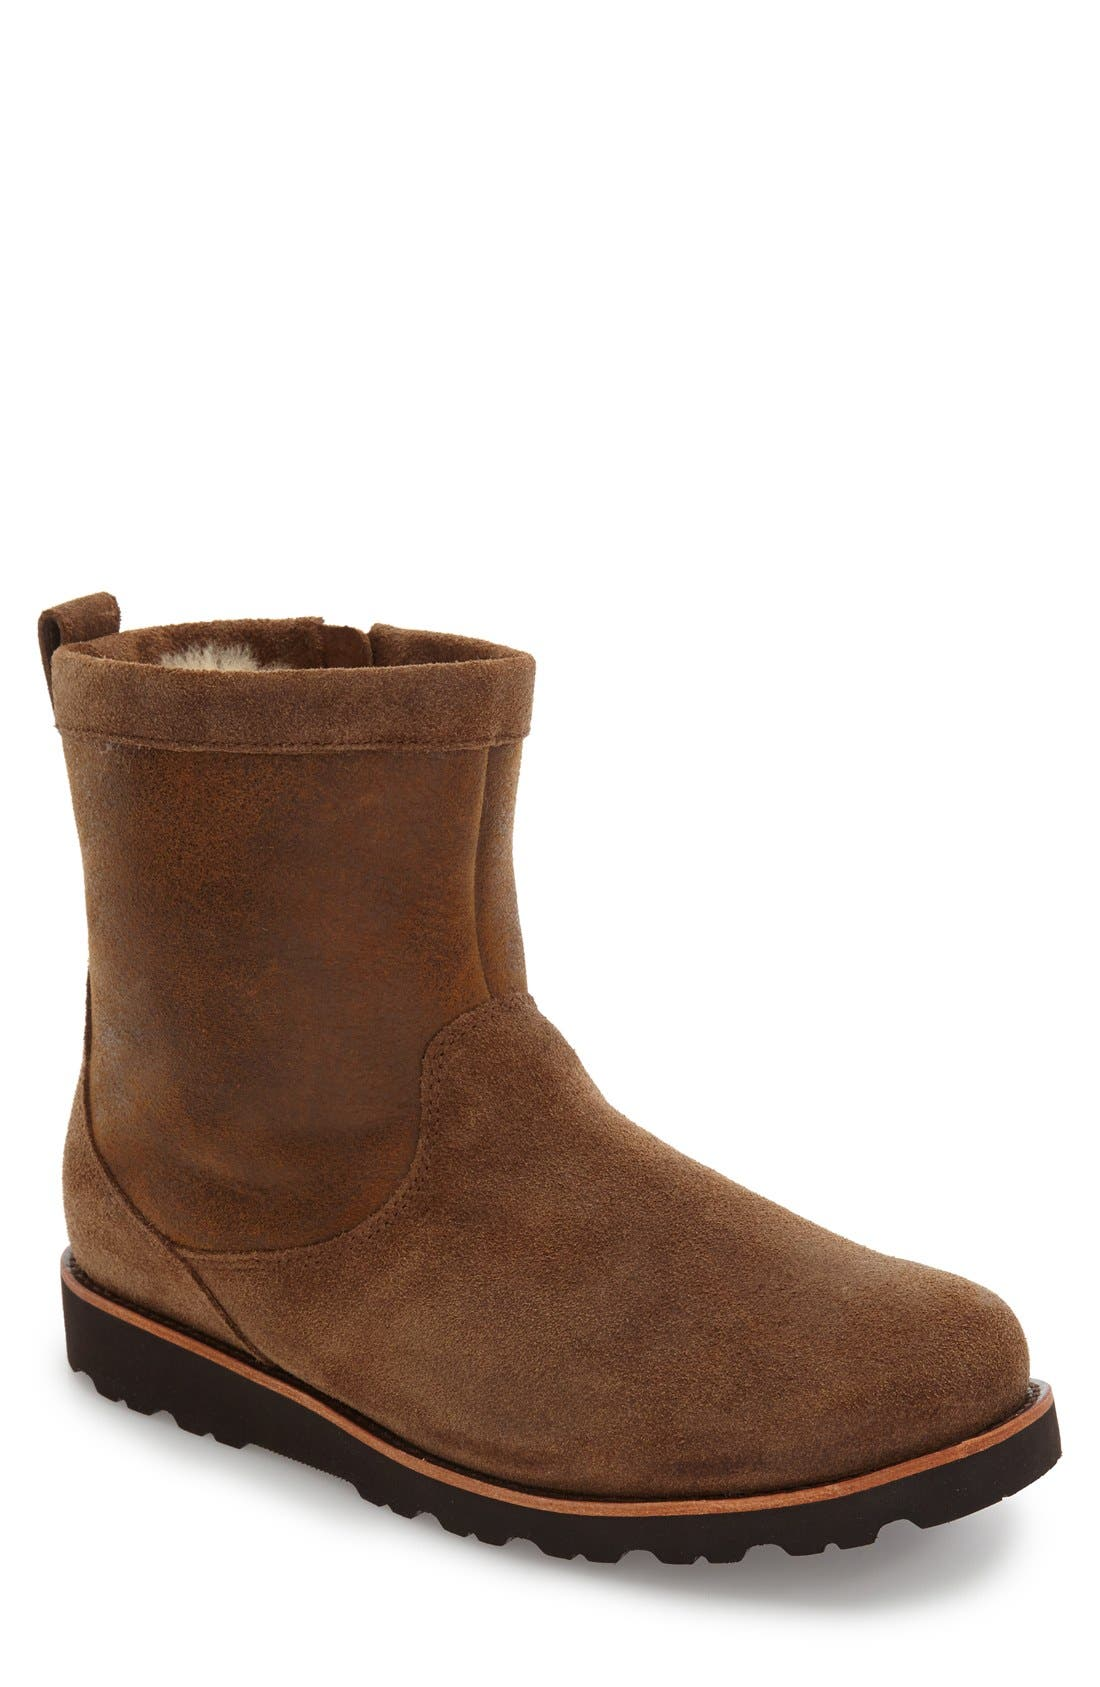 Alternate Image 1 Selected - UGG Hendren Bomber Zip Boot (Men)